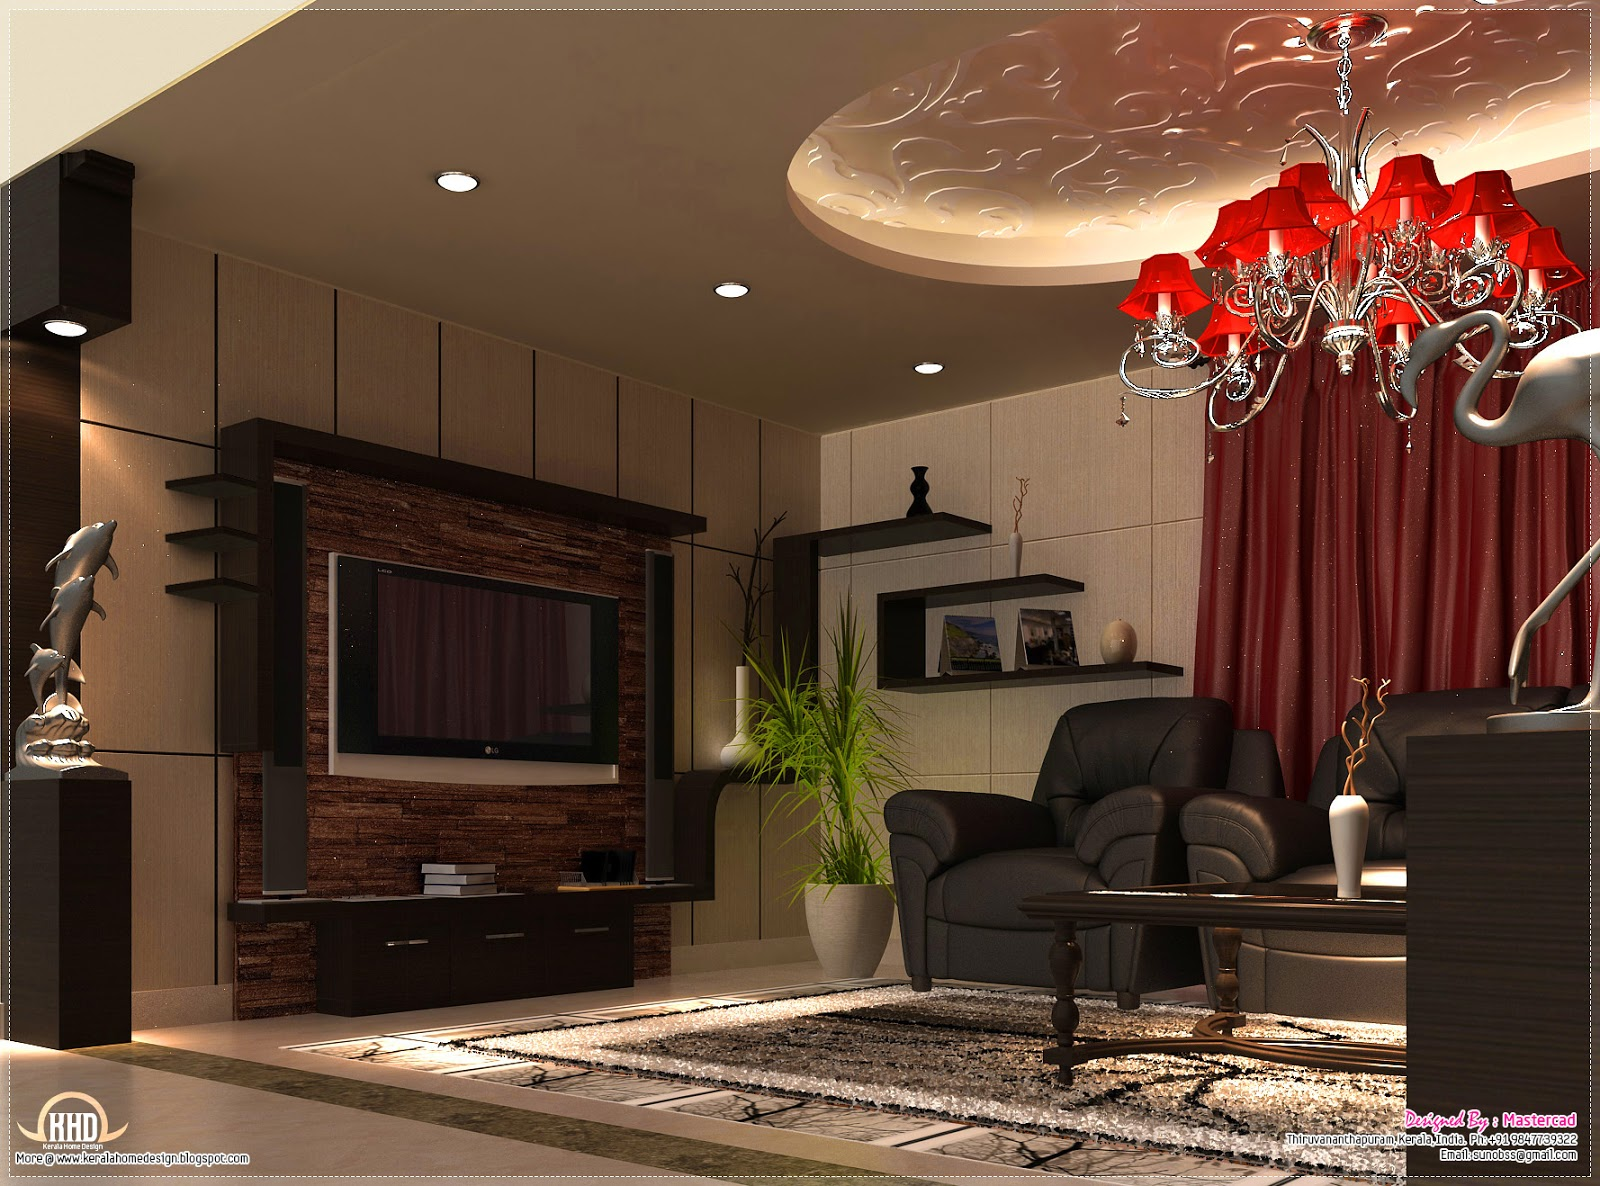 Interior design ideas kerala home design and floor plans for Kerala home interior design ideas